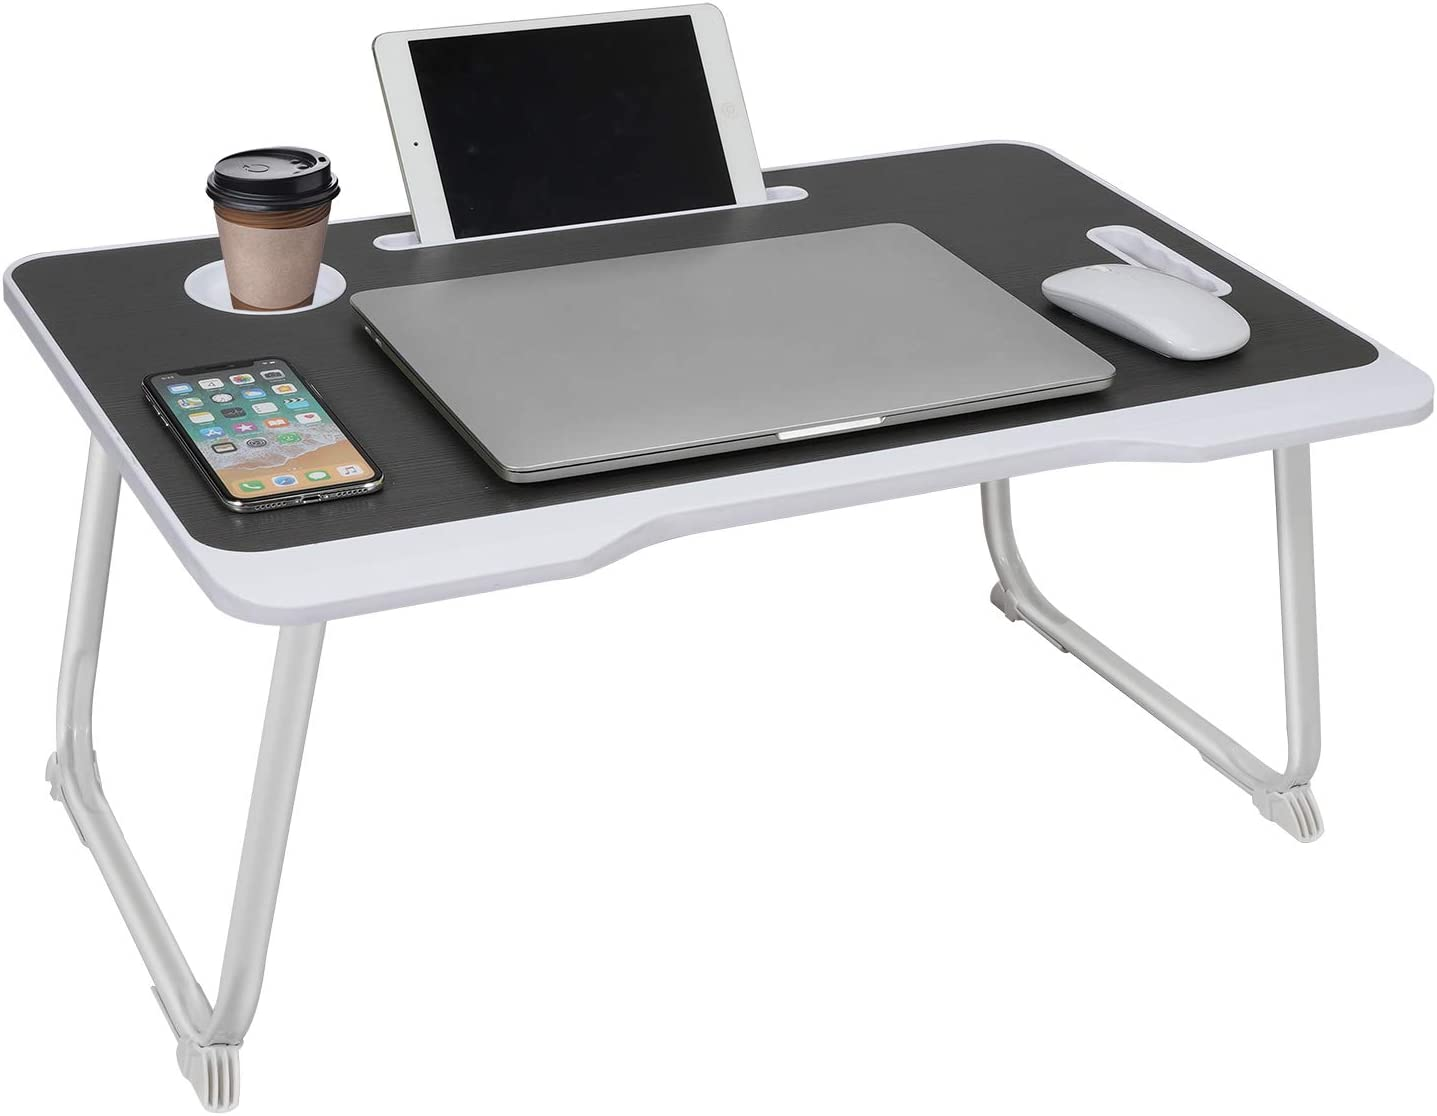 Phyllia Laptop Bed Tray Table,Foldable Lap Desk Stand with Cup Holder for Eating, Working, Writing, Gaming, Drawing (Black)